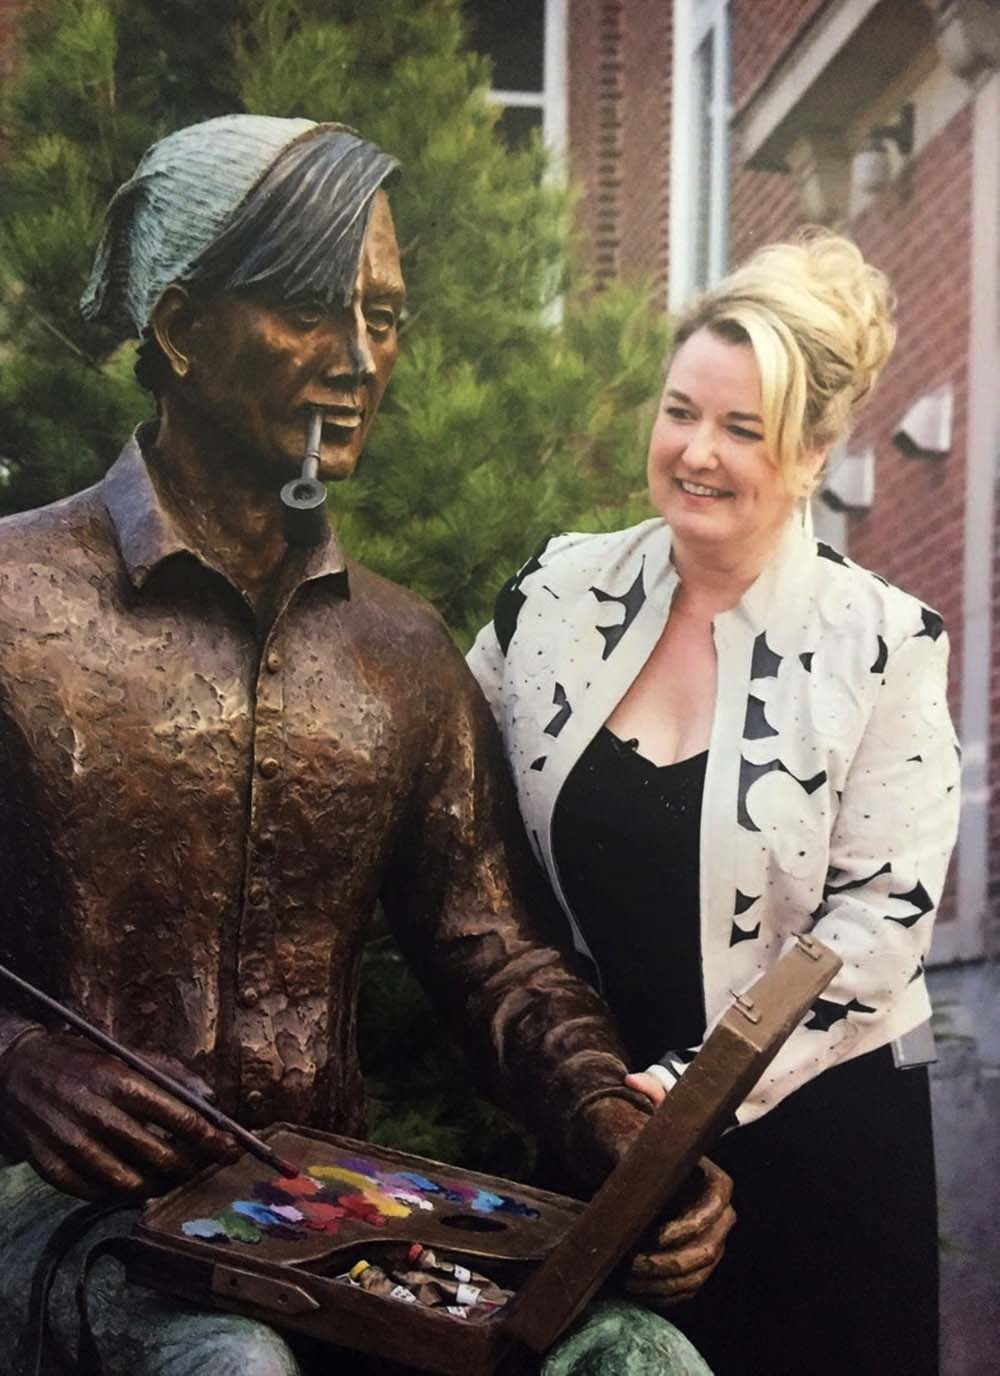 Brenda Wainman Goulet with Tom Thomson Sculpture